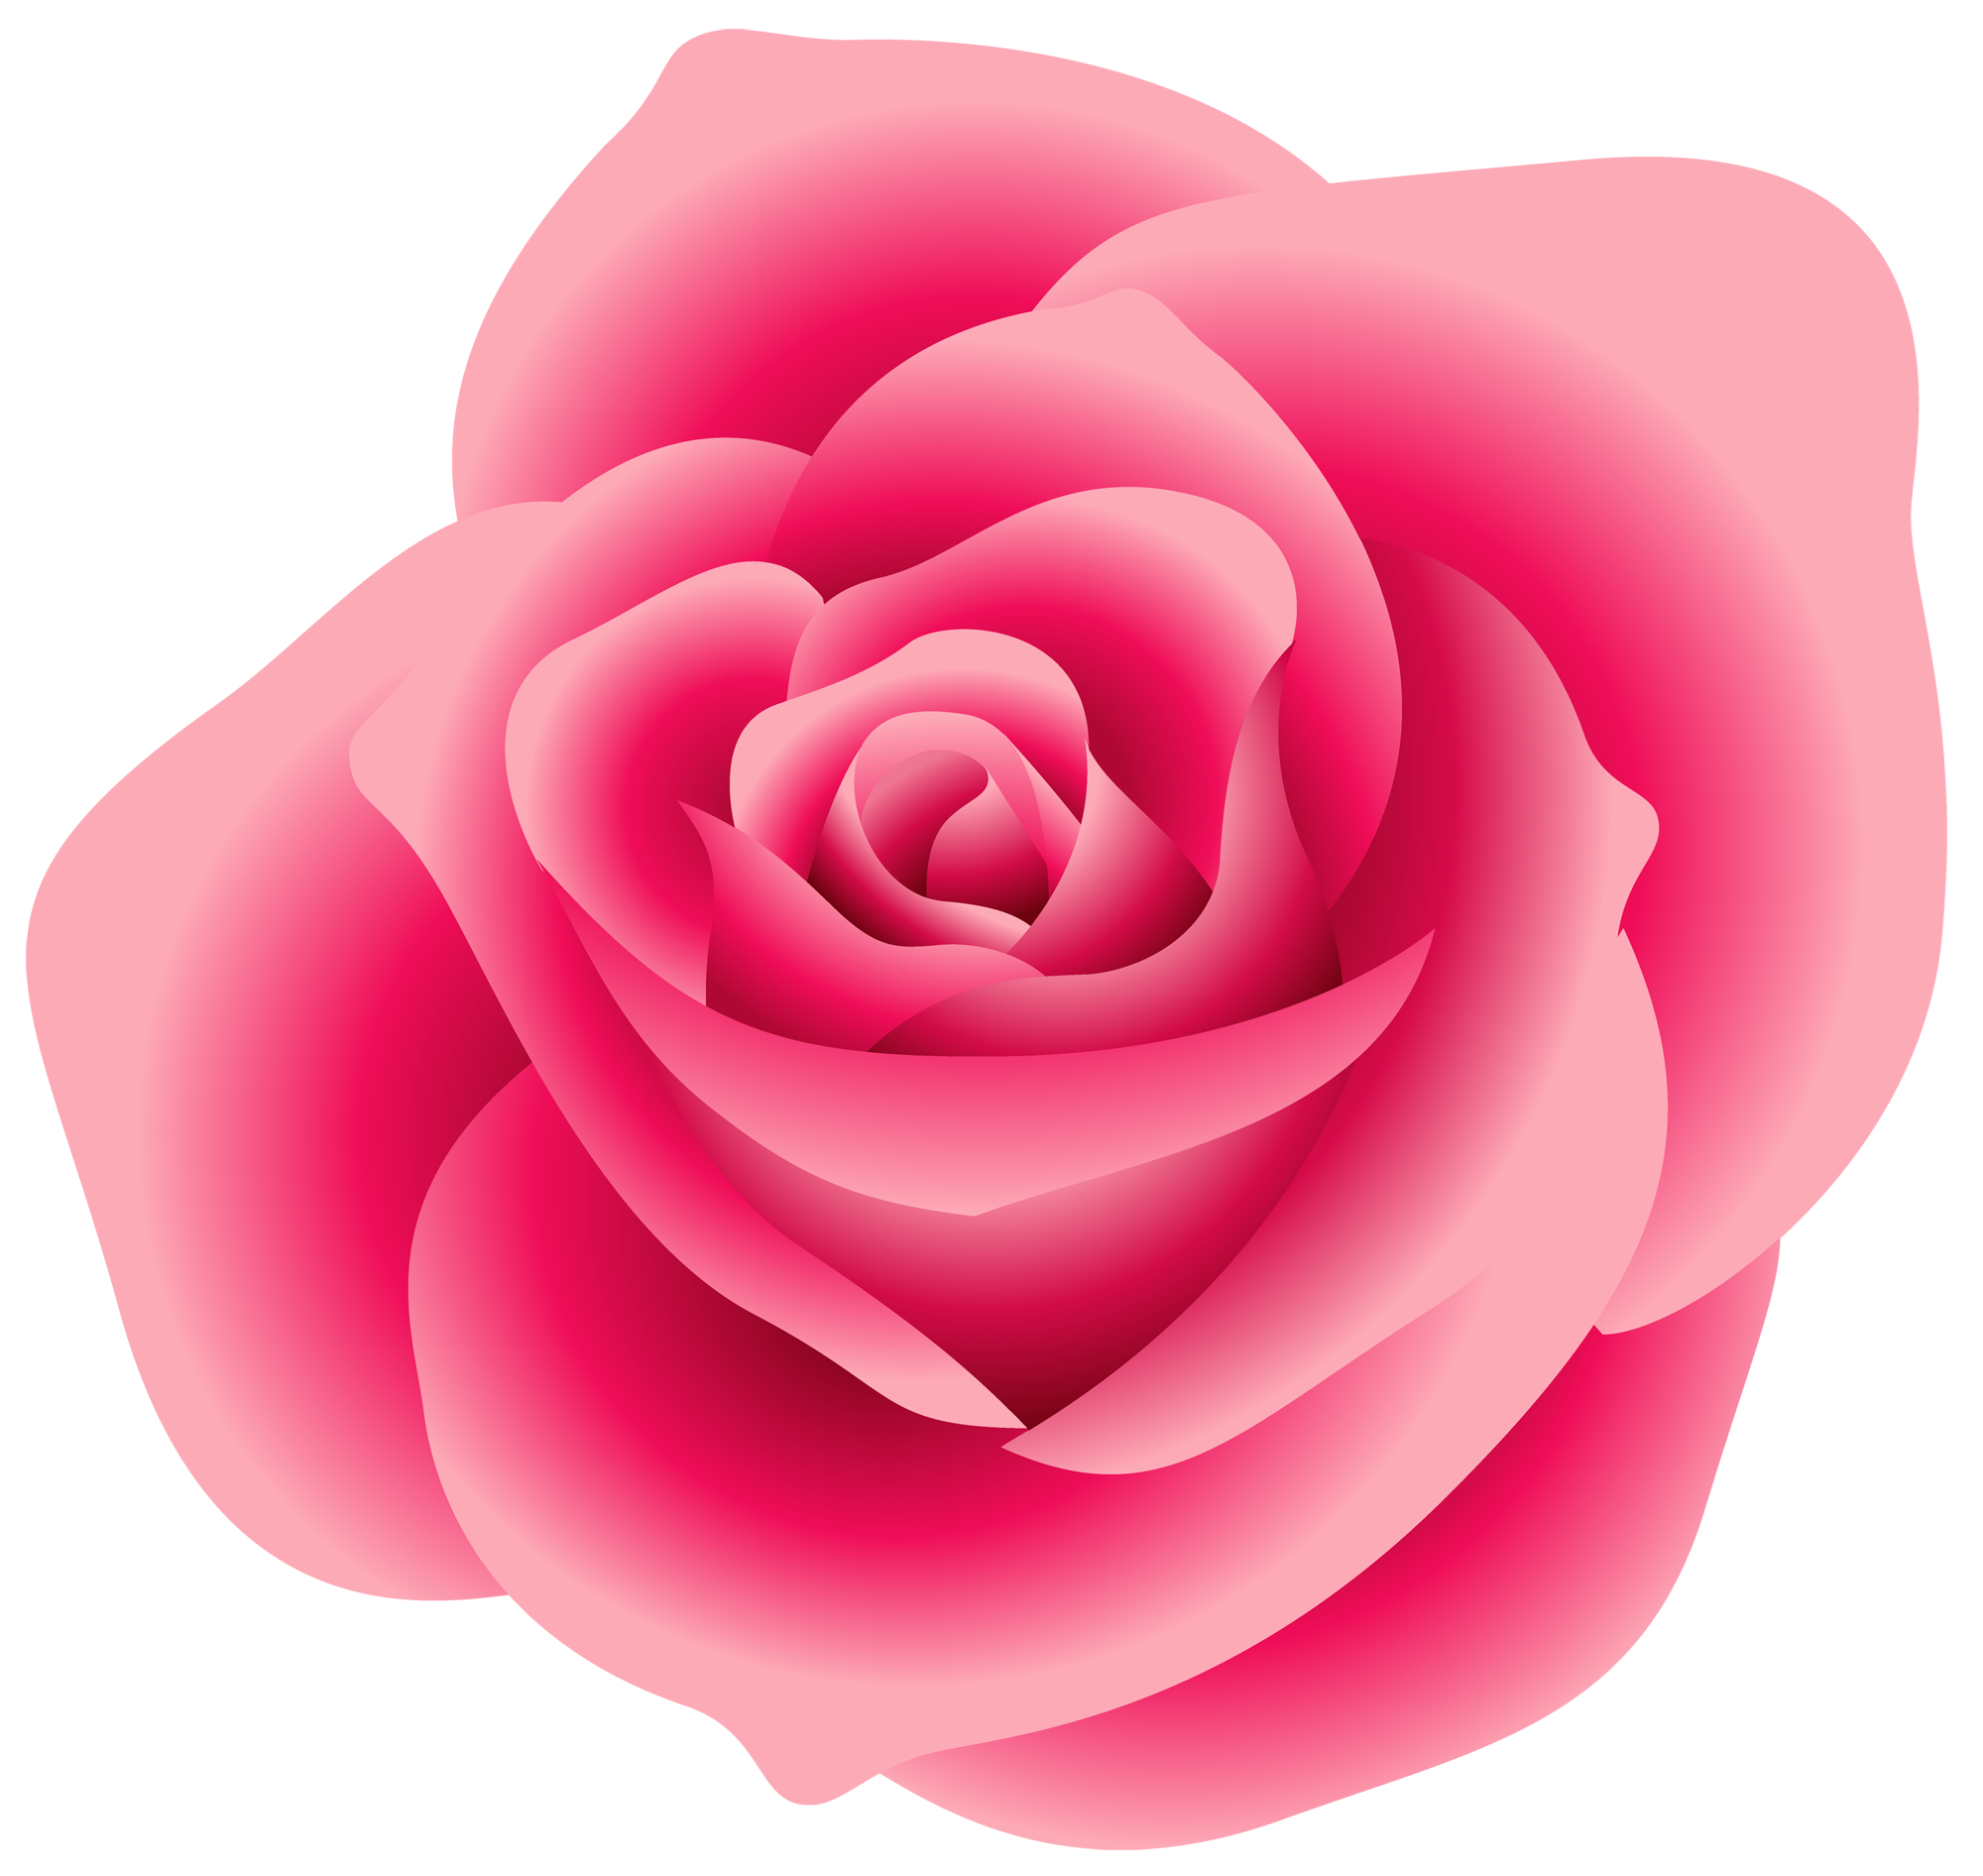 White Rose clipart real Pink roses Pinterest Rose Pink